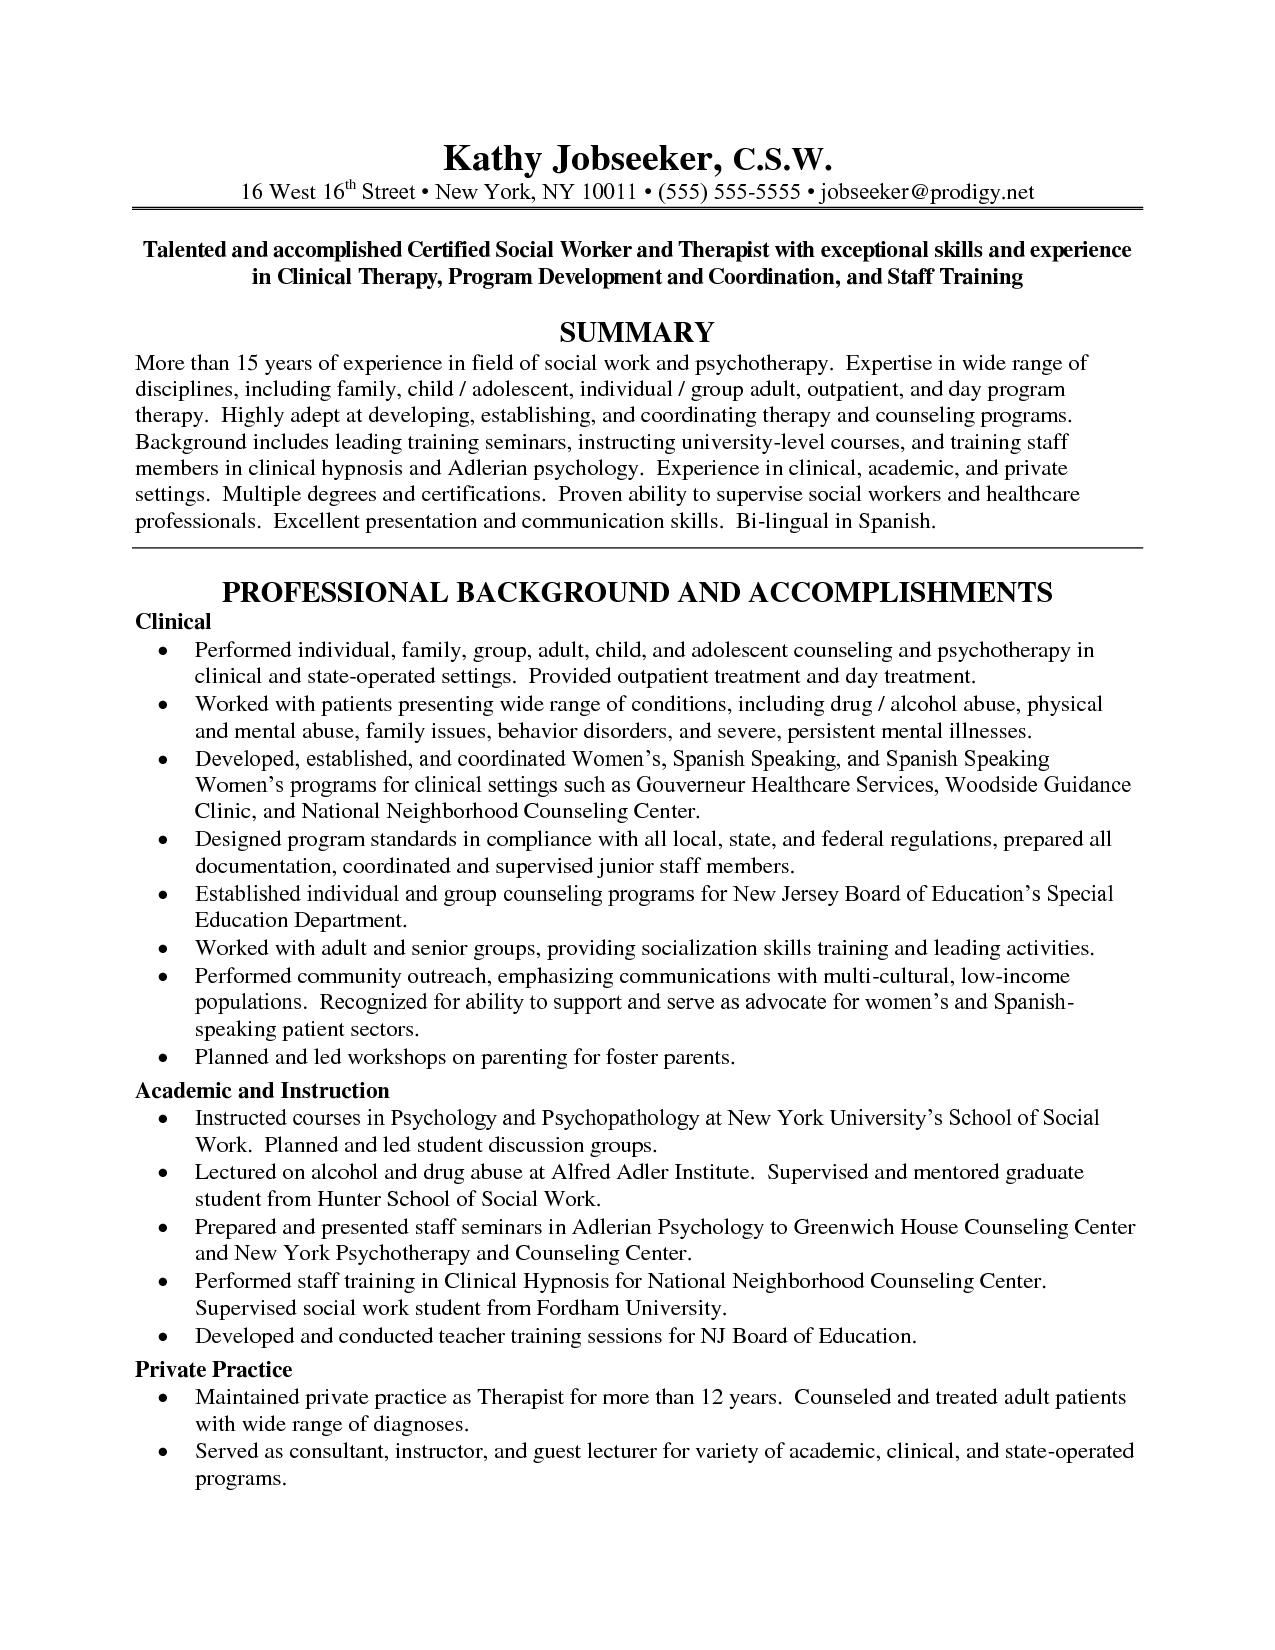 Social Work Resume Examples With License